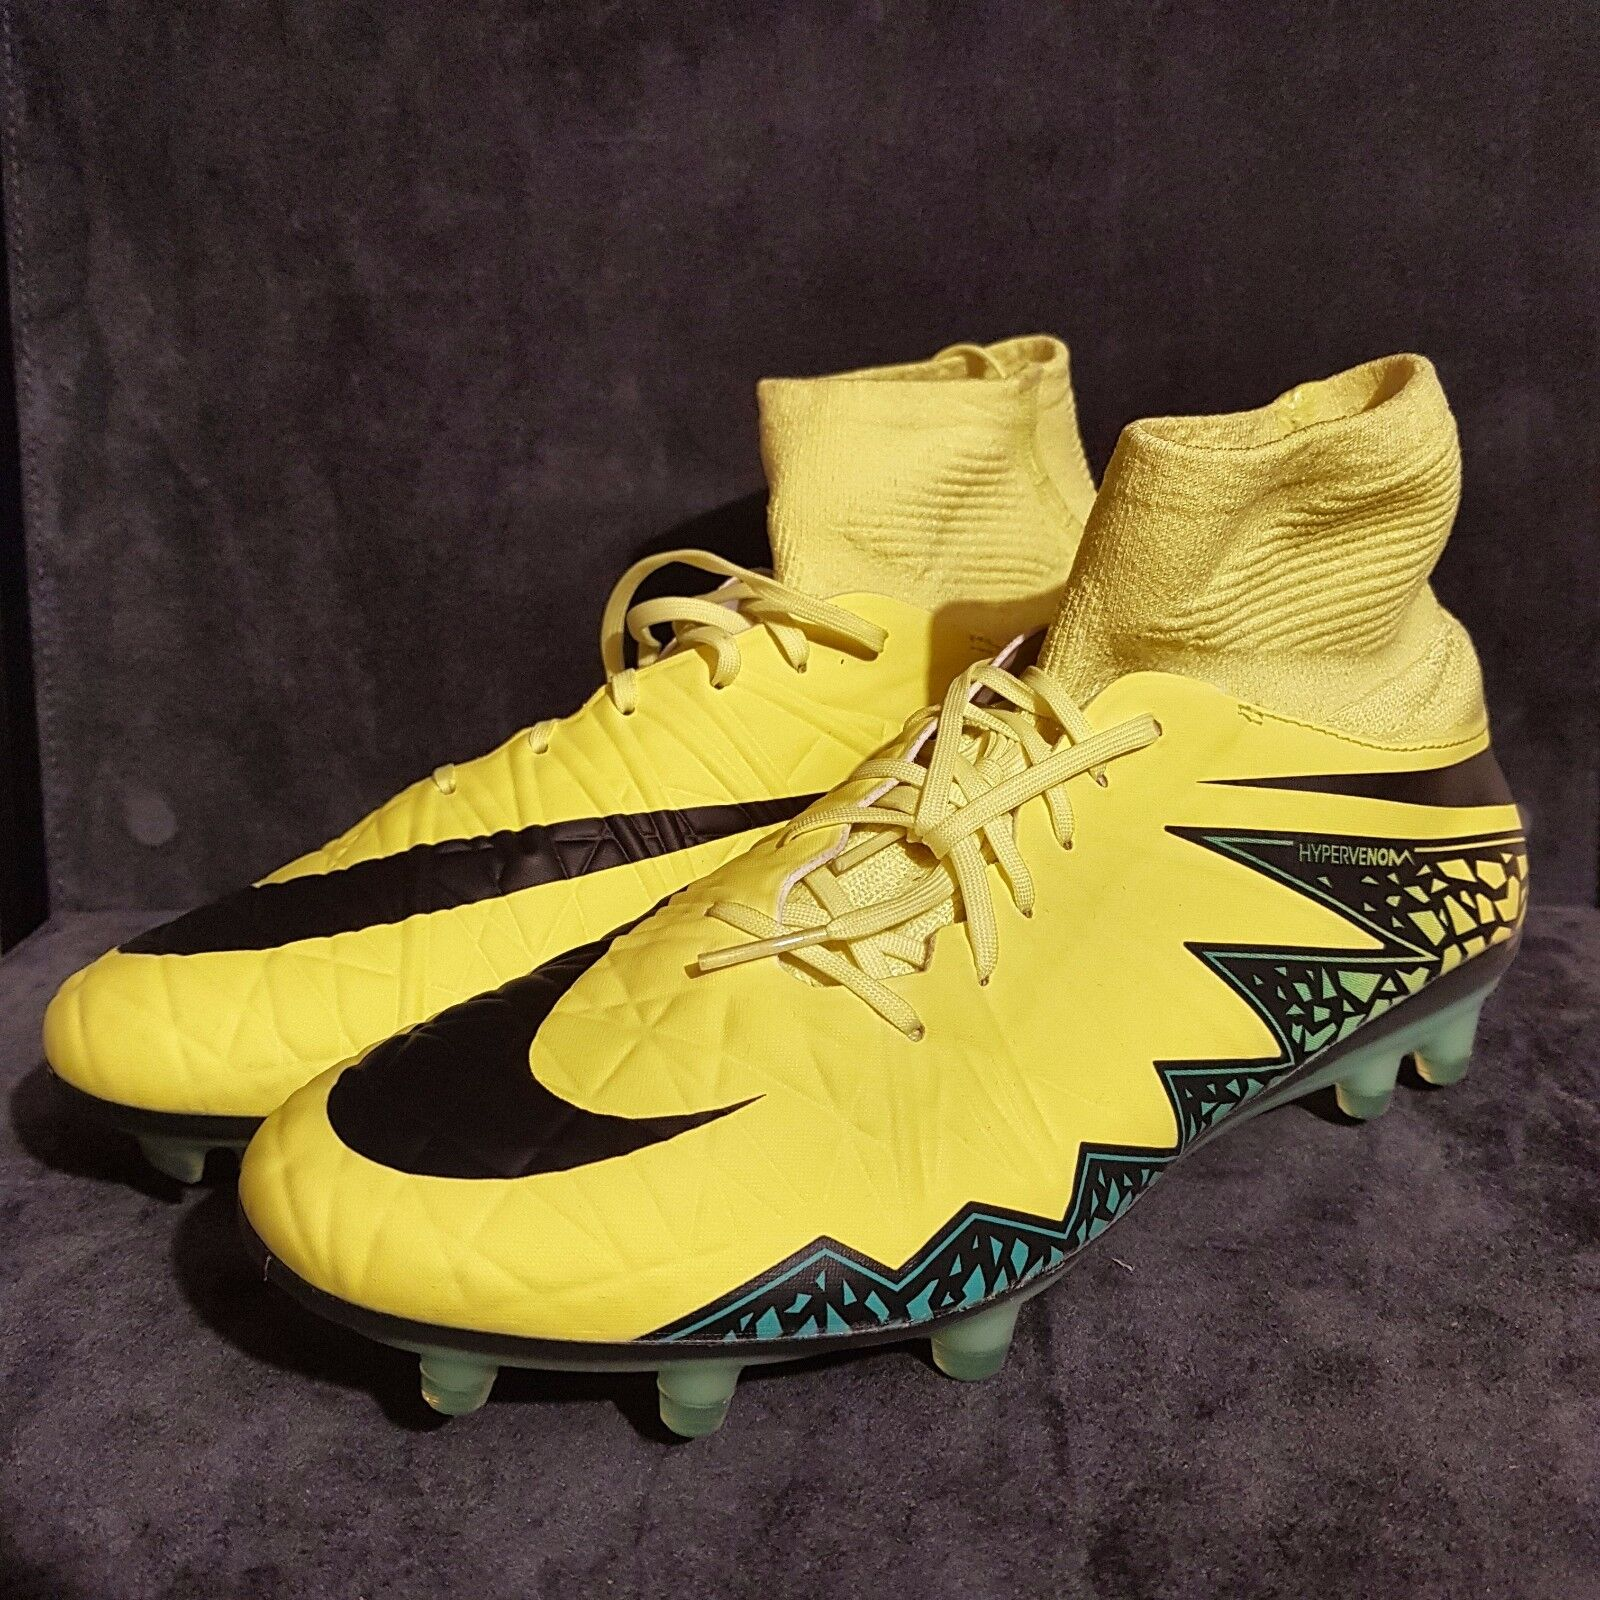 NIKE HYPERVENOM PHATAL 2 DF FG Soccer Cleats US 8,5   EU 42   UK 7,5 (rrp  )